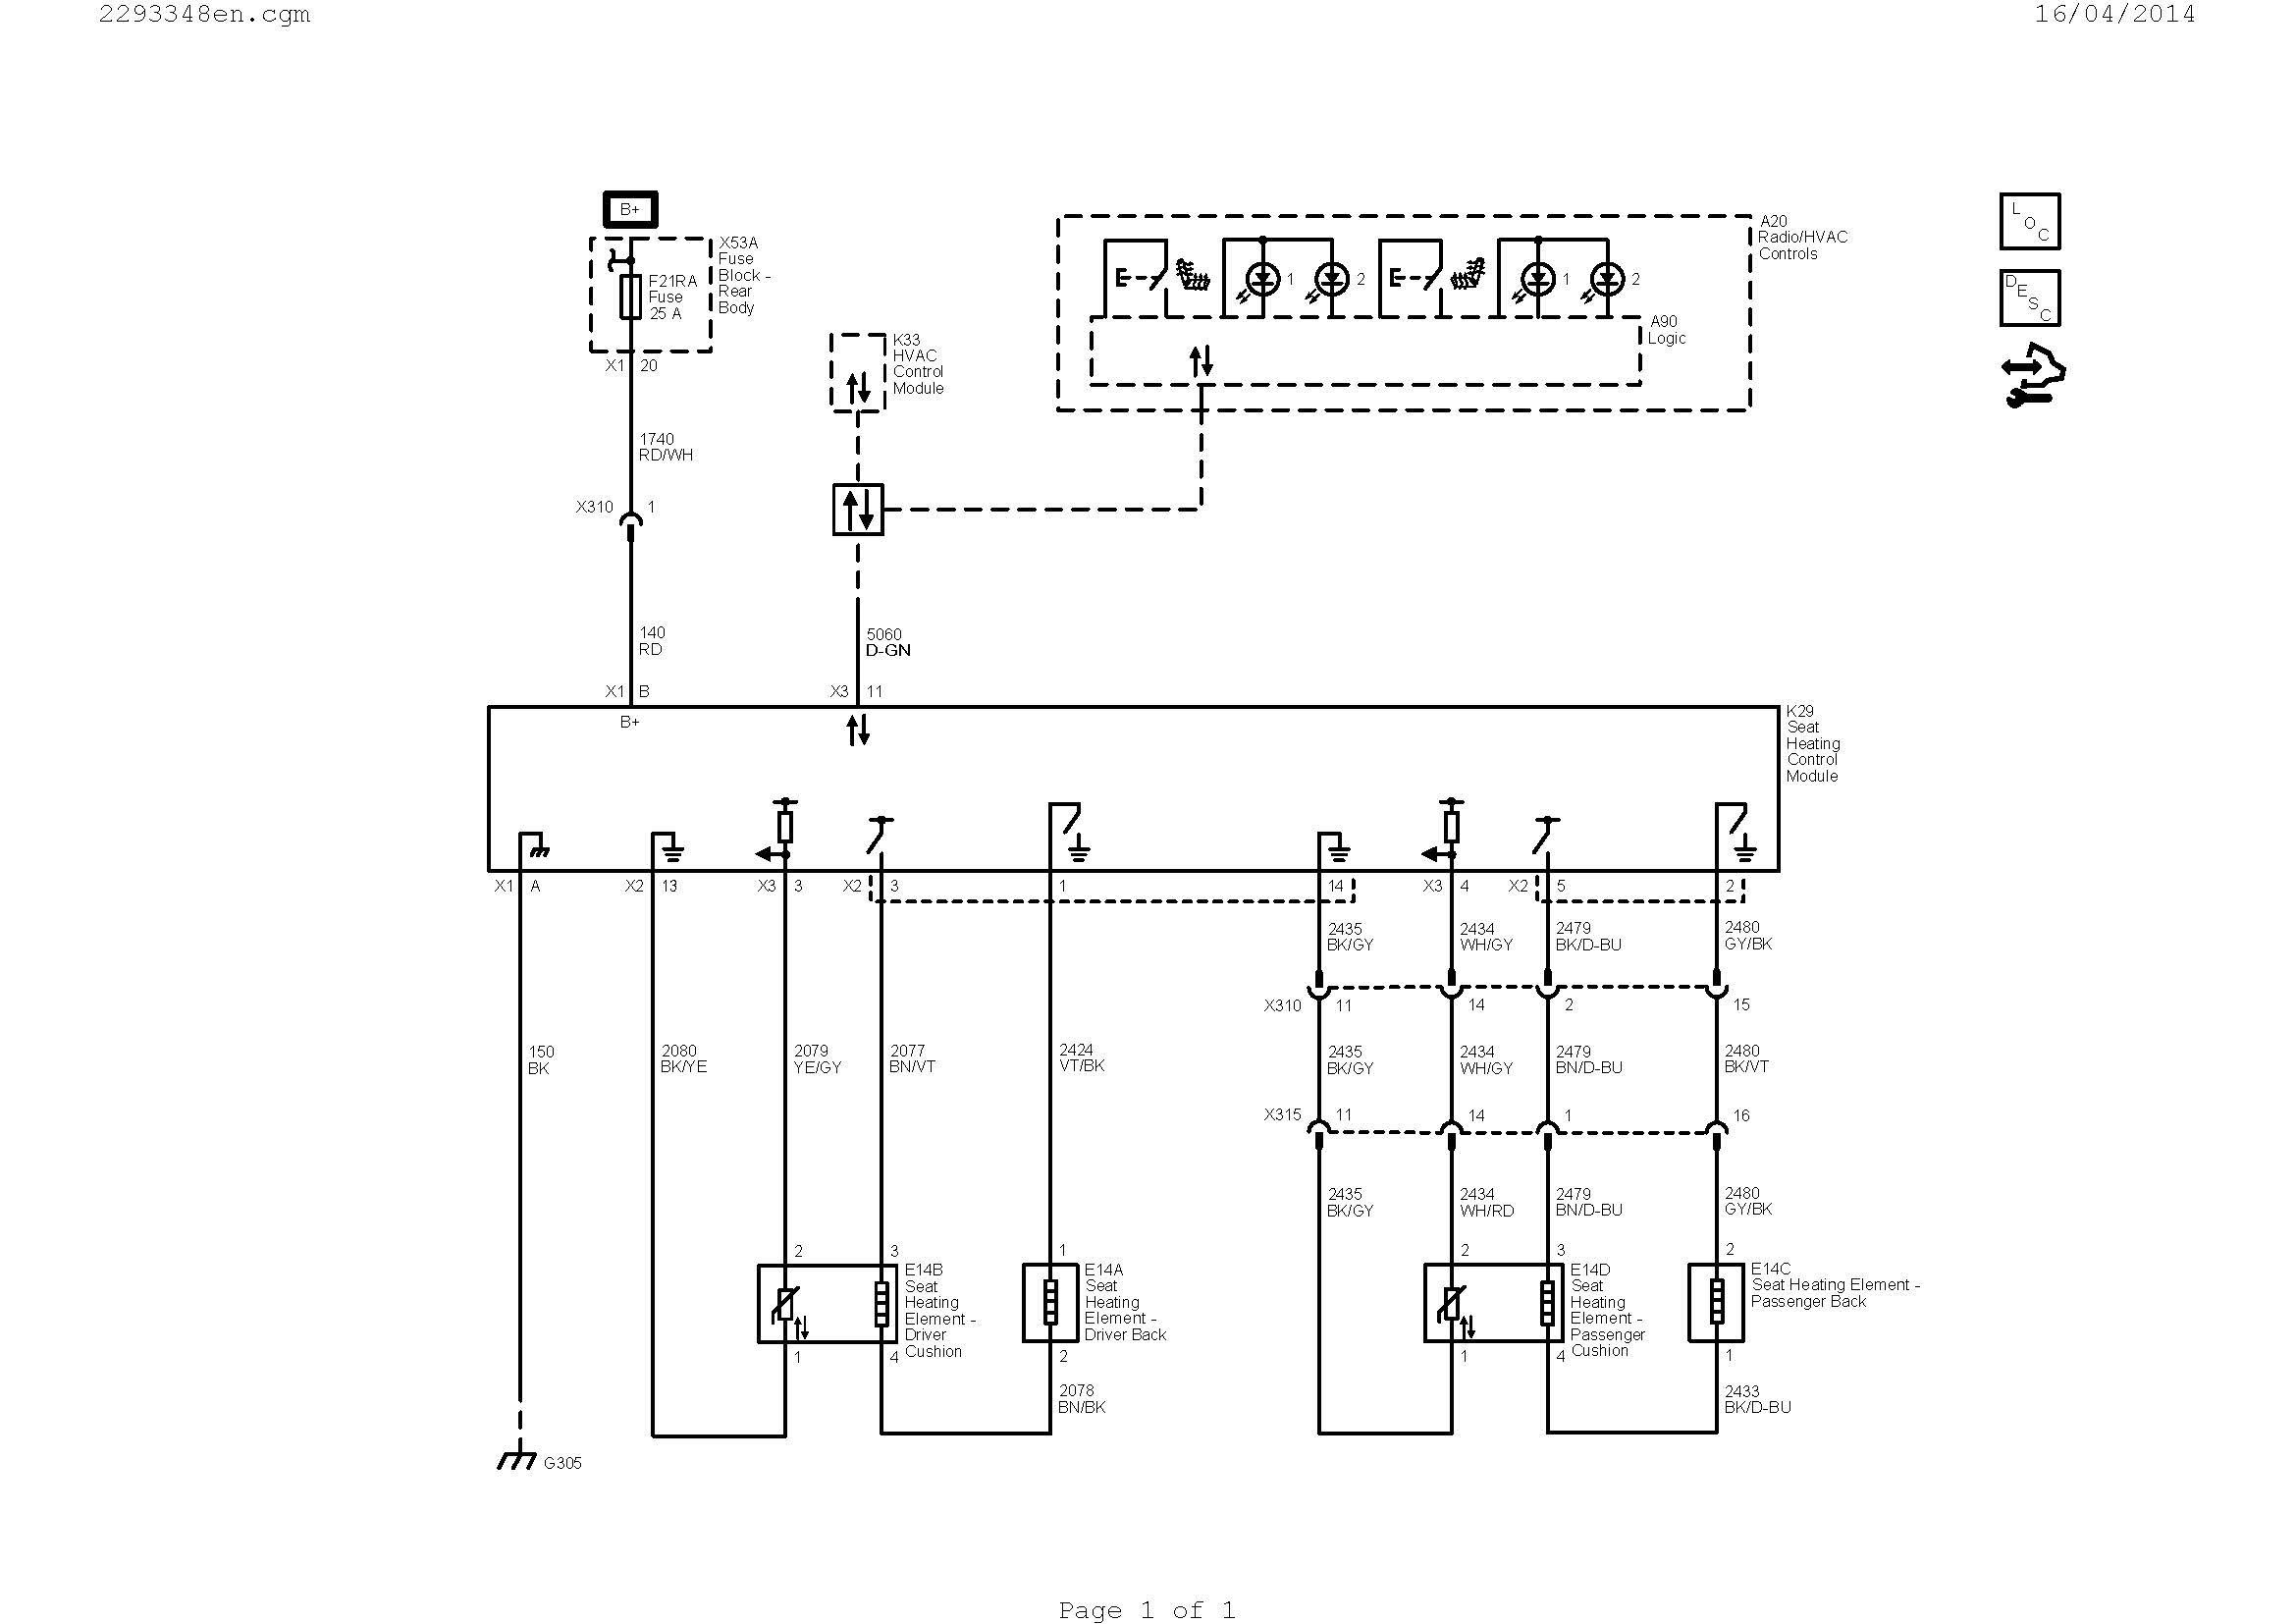 120 volt relay wiring diagram Collection-Wiring Diagram for Changeover Relay Inspirationa Wiring Diagram Ac Valid Hvac Diagram Best Hvac Diagram 0d 3-a